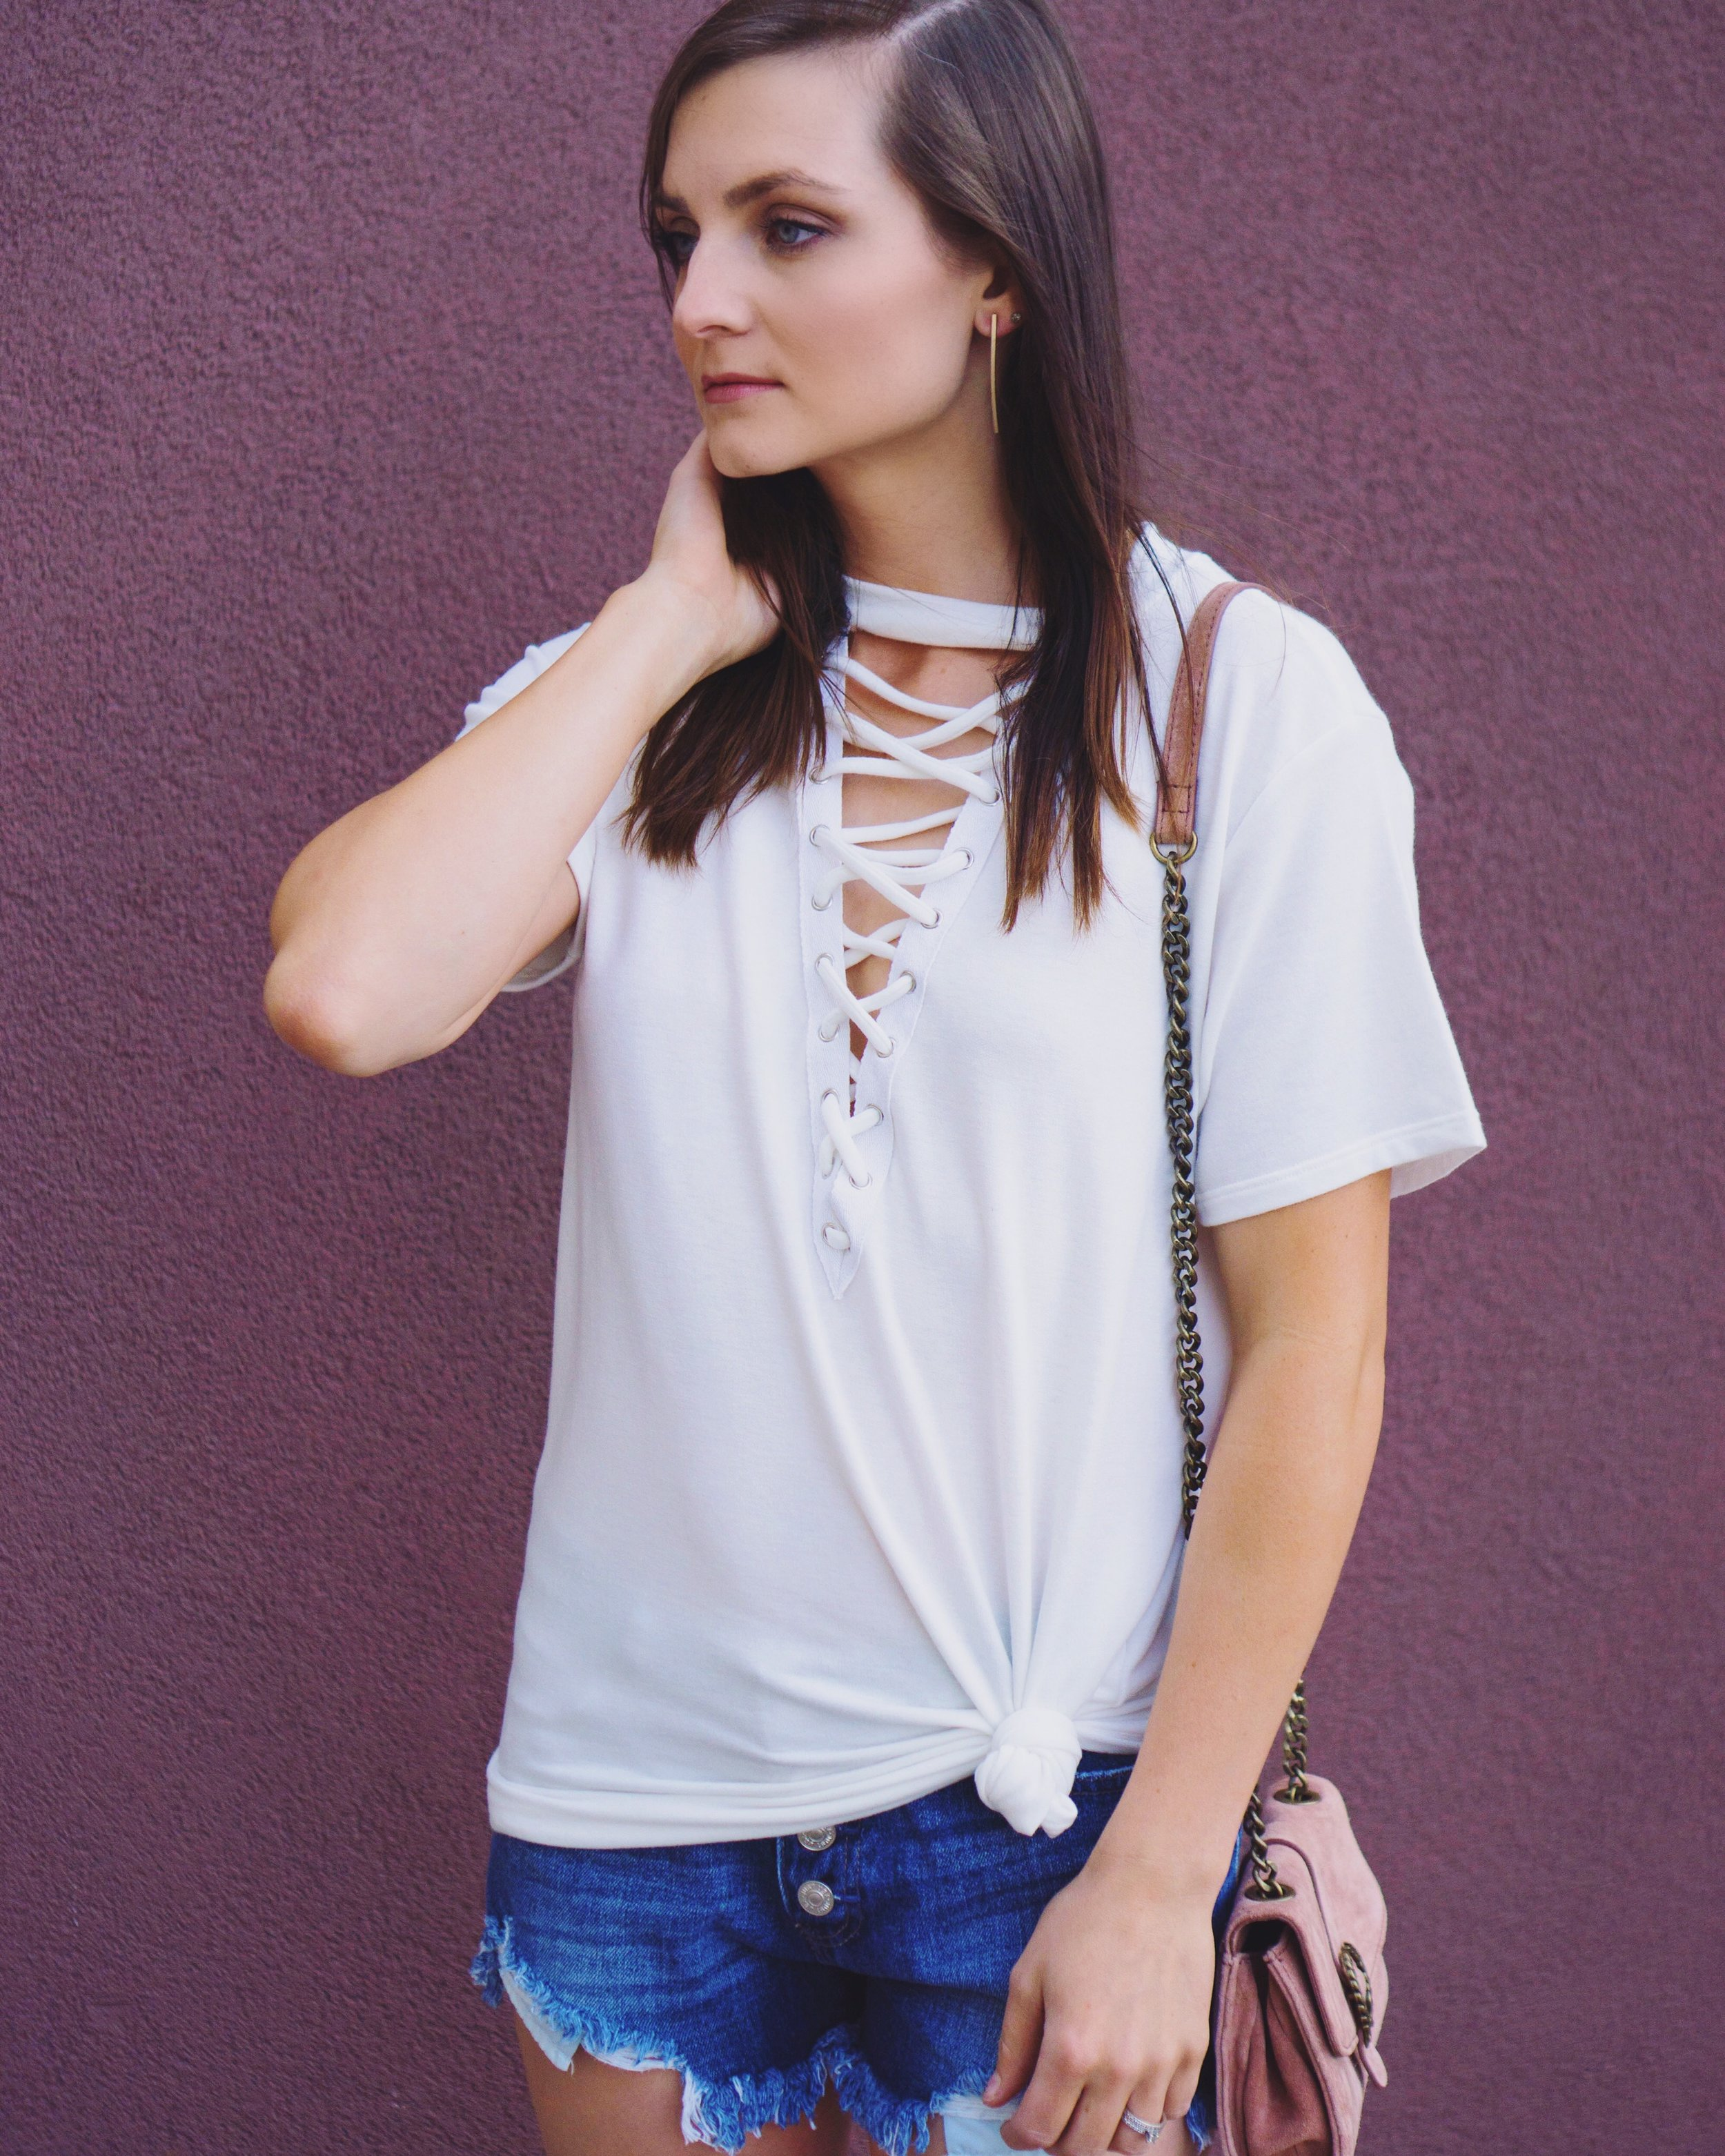 "<img src =""style-collective-fearless-friday-award.jpg"" alt=""fashion-lace-up-tee-distressed-denim-cut-offs-style-collective-fearless-award"">"